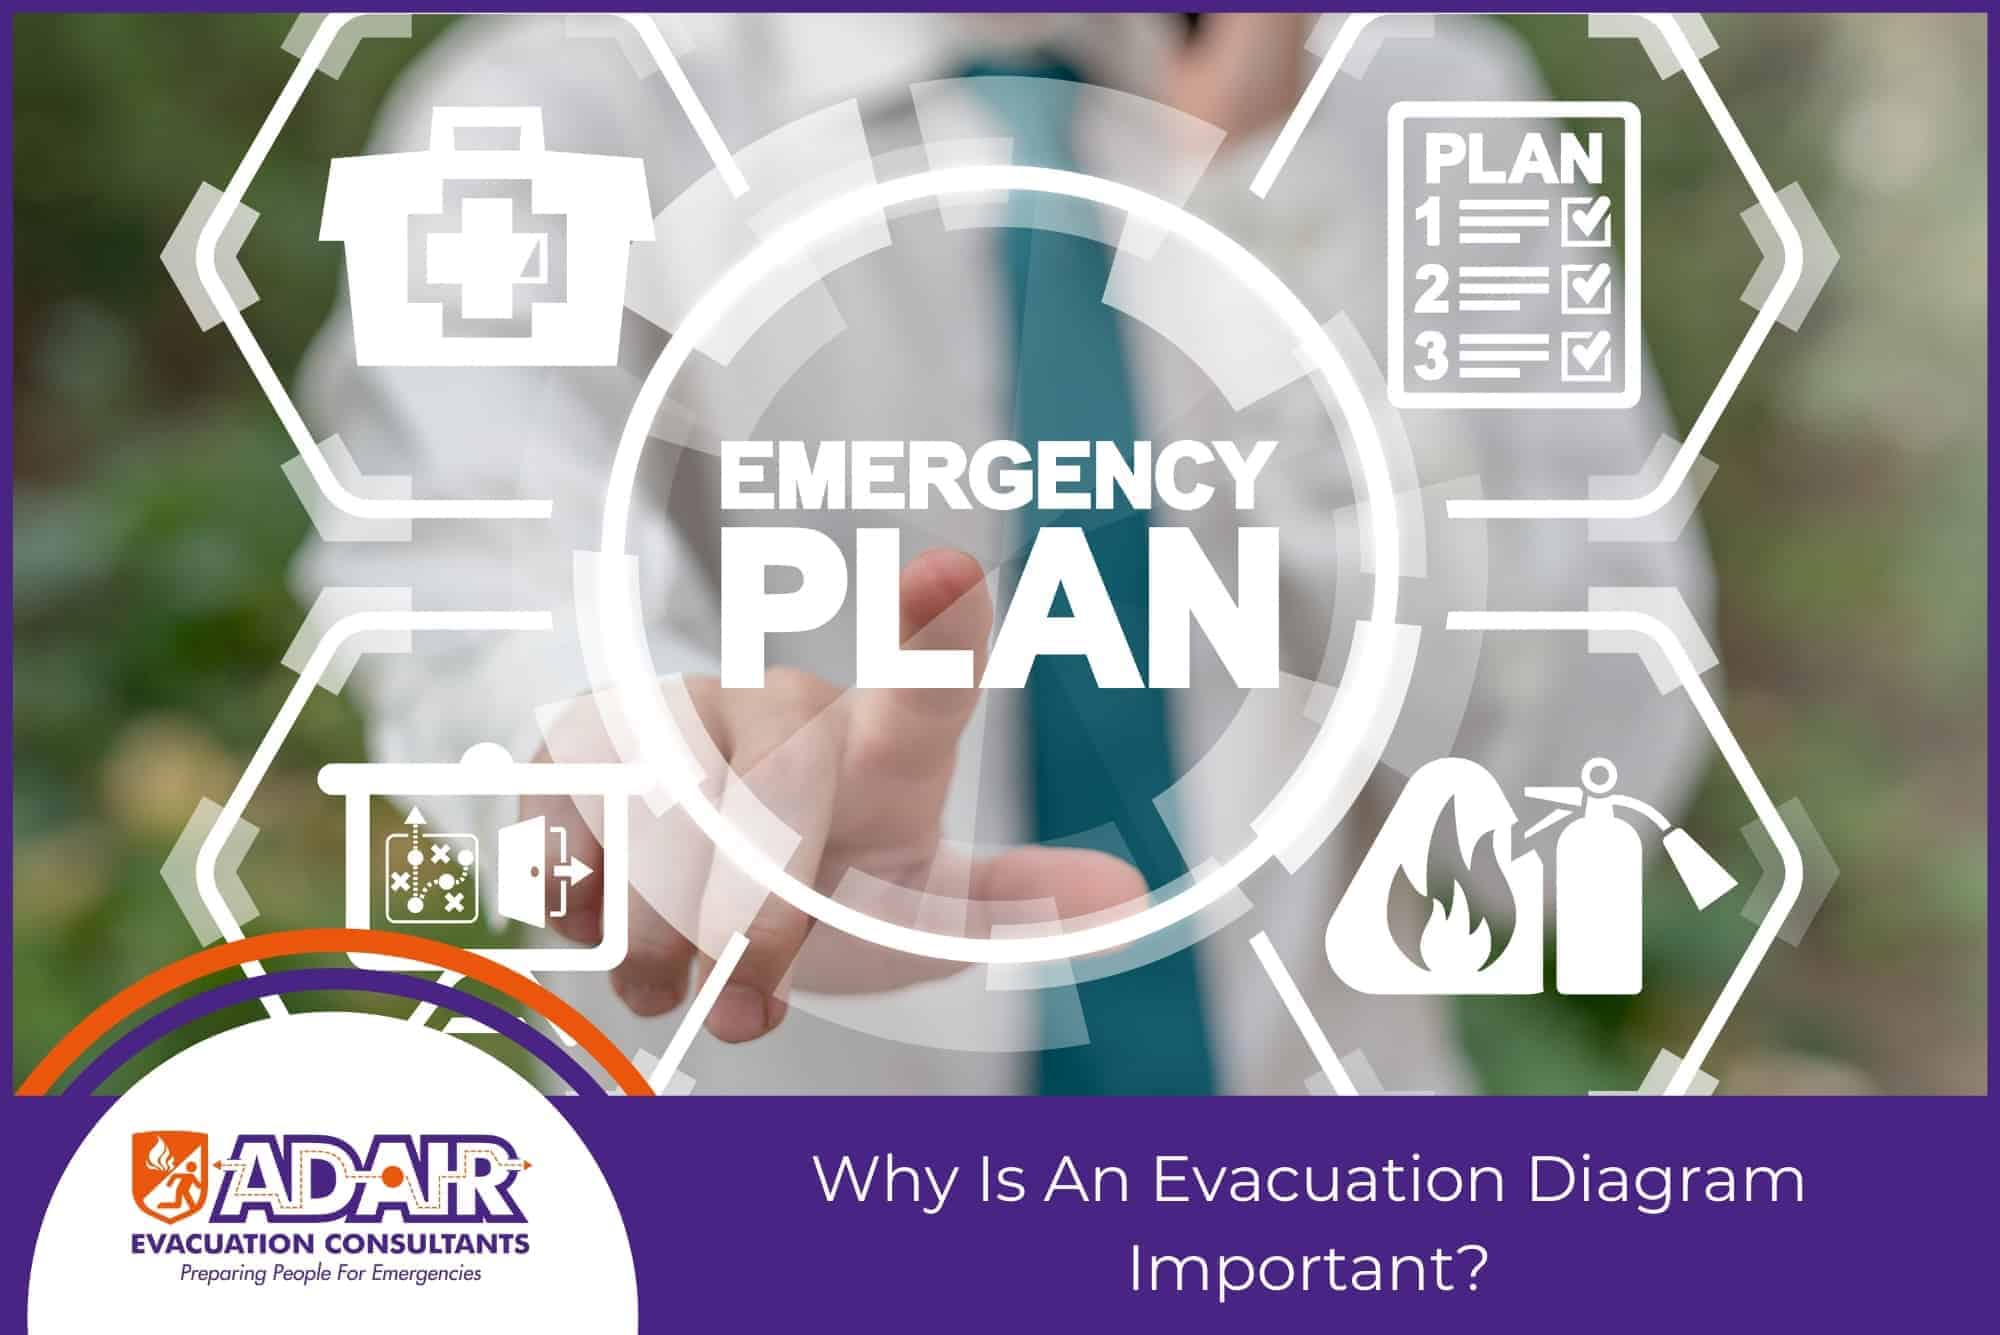 Why Is An Evacuation Diagram Important